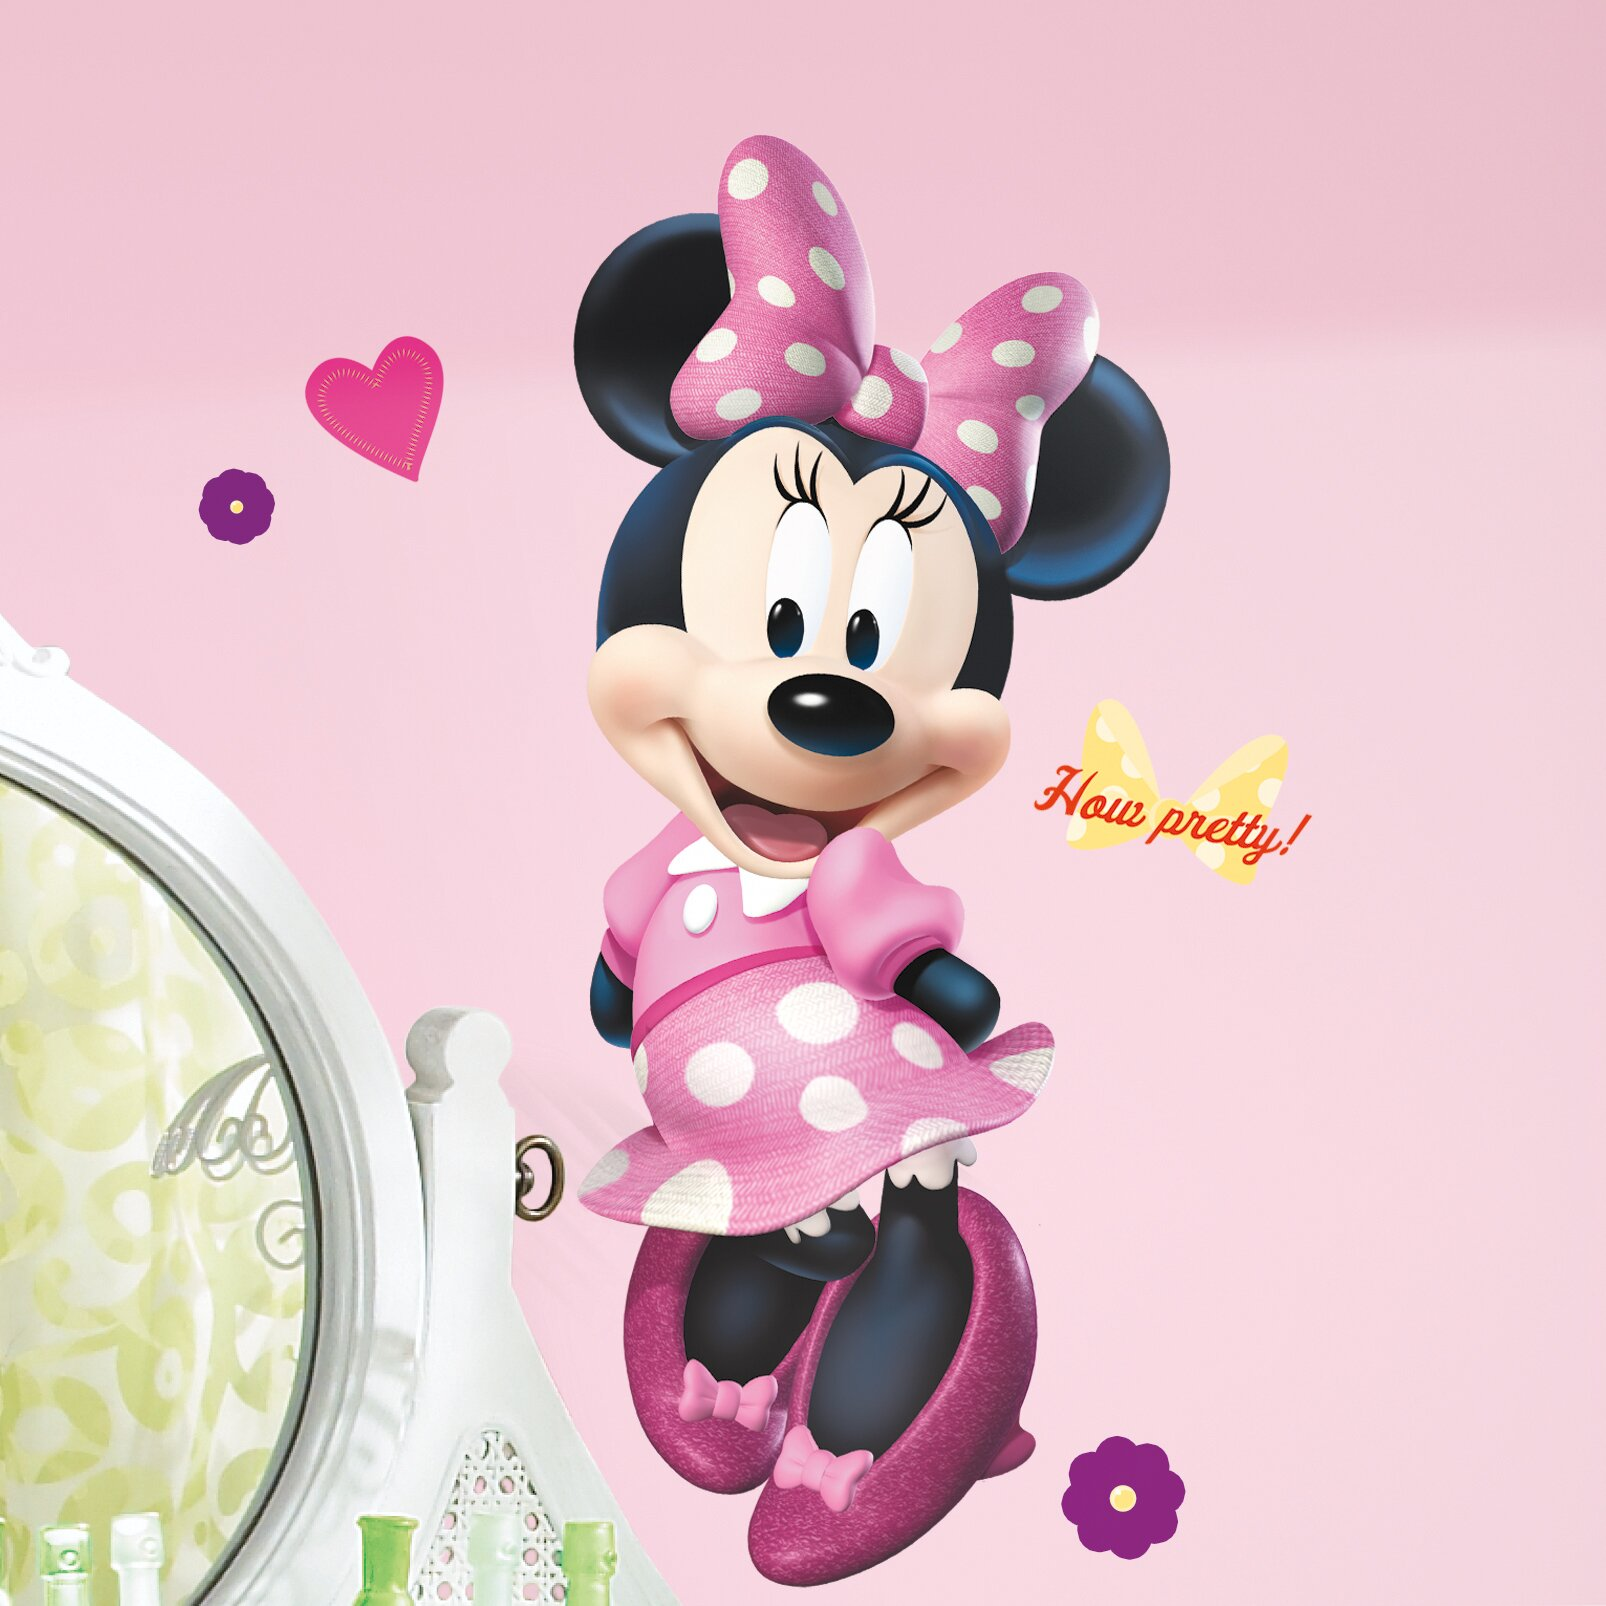 Popular Characters Mickey And Friends Minnie Bowtique